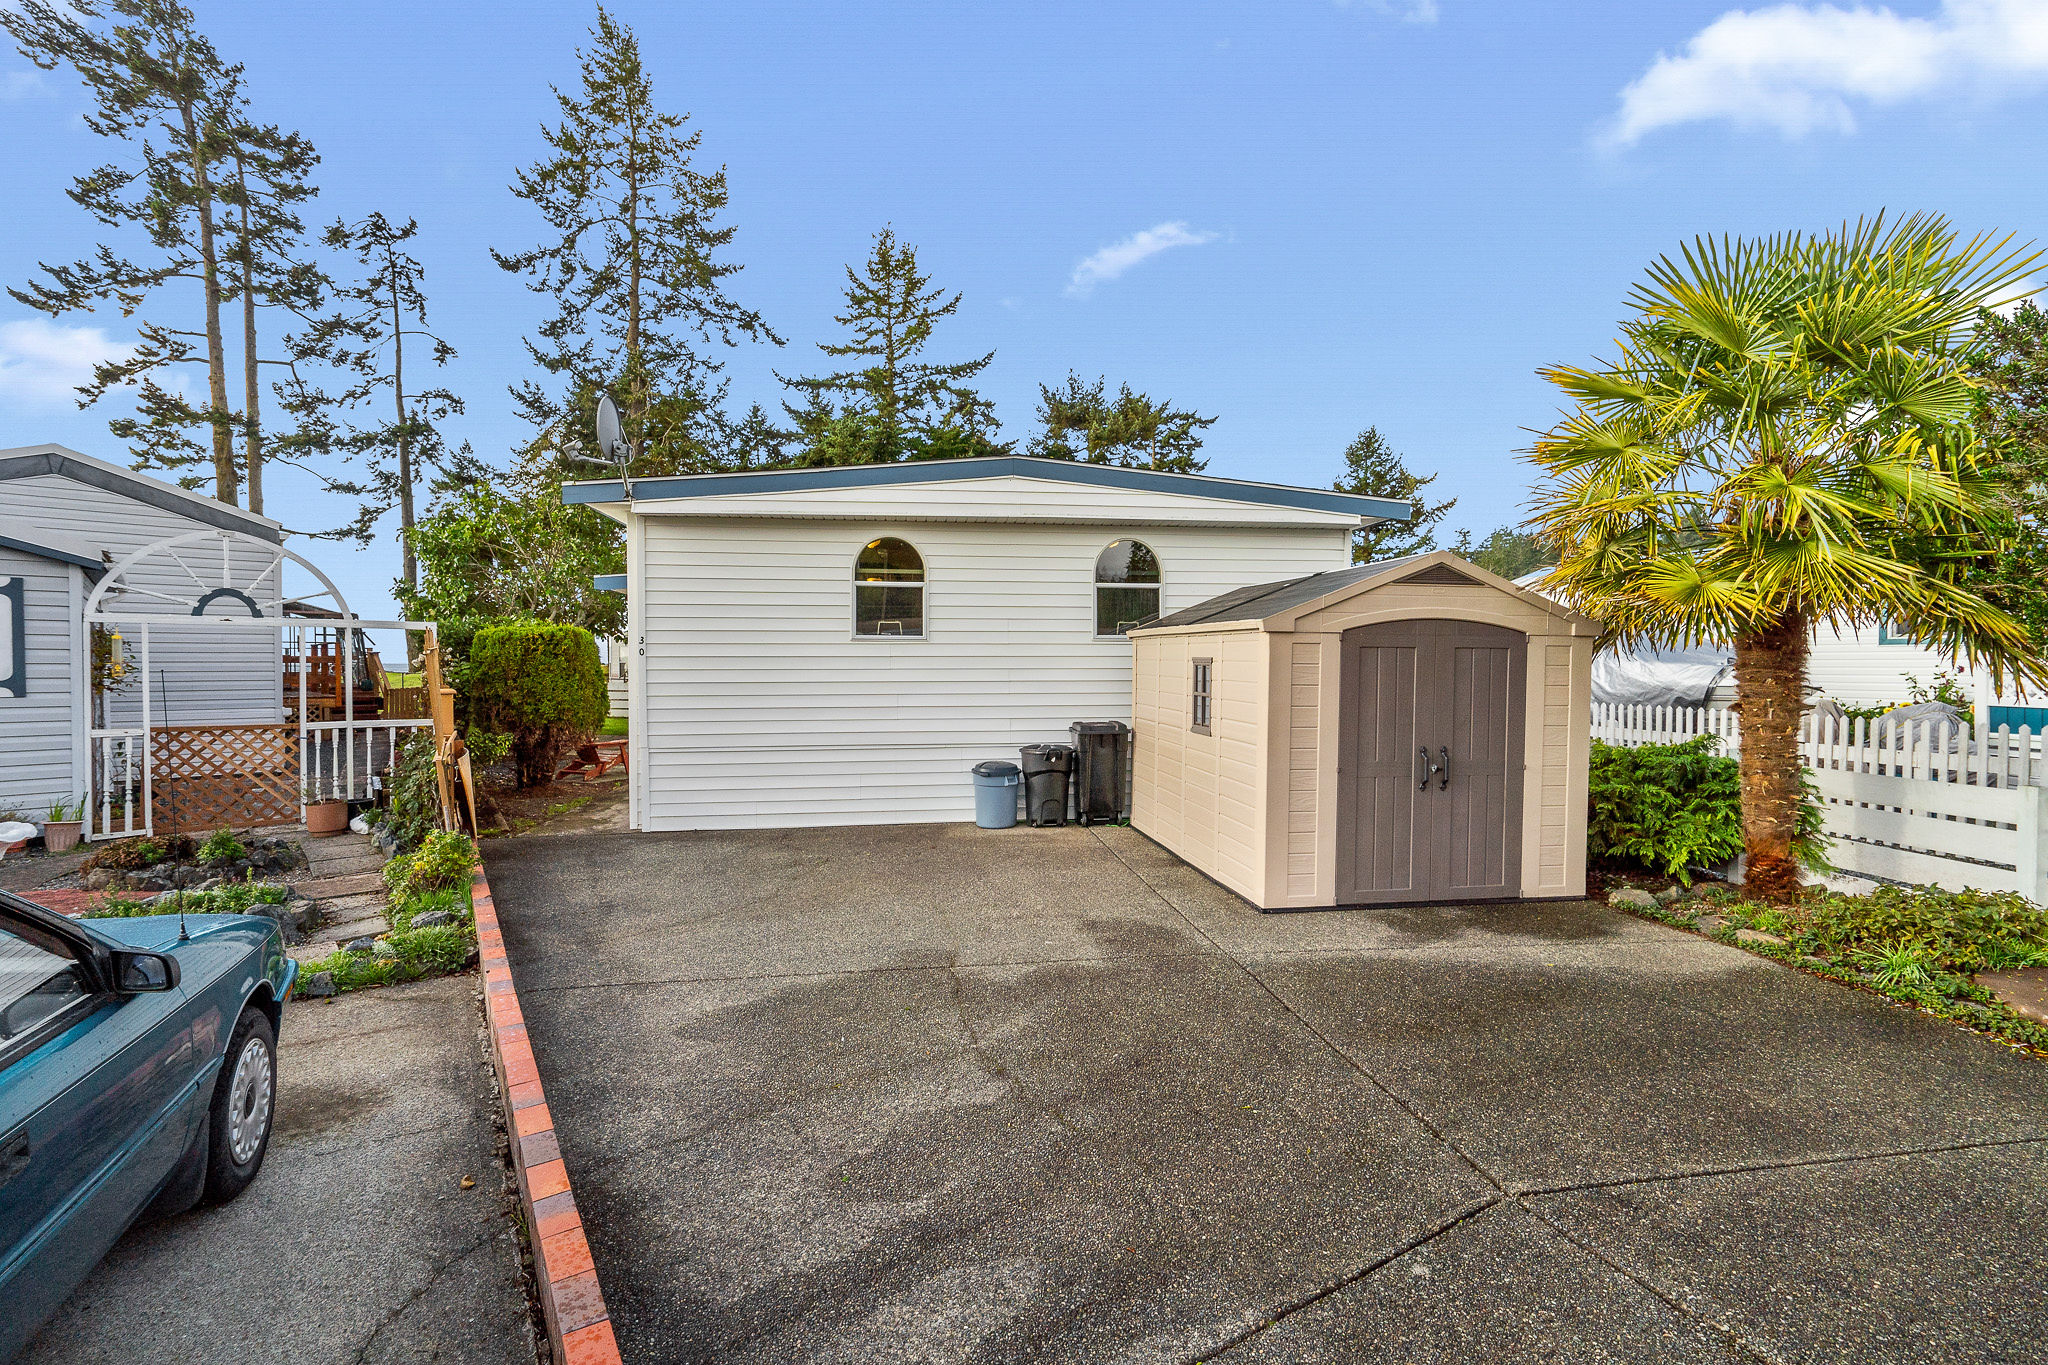 Affordable Seaside Living in Sooke - Waterfront Location - Tidy 2 bedroom manufactured Home $374,000